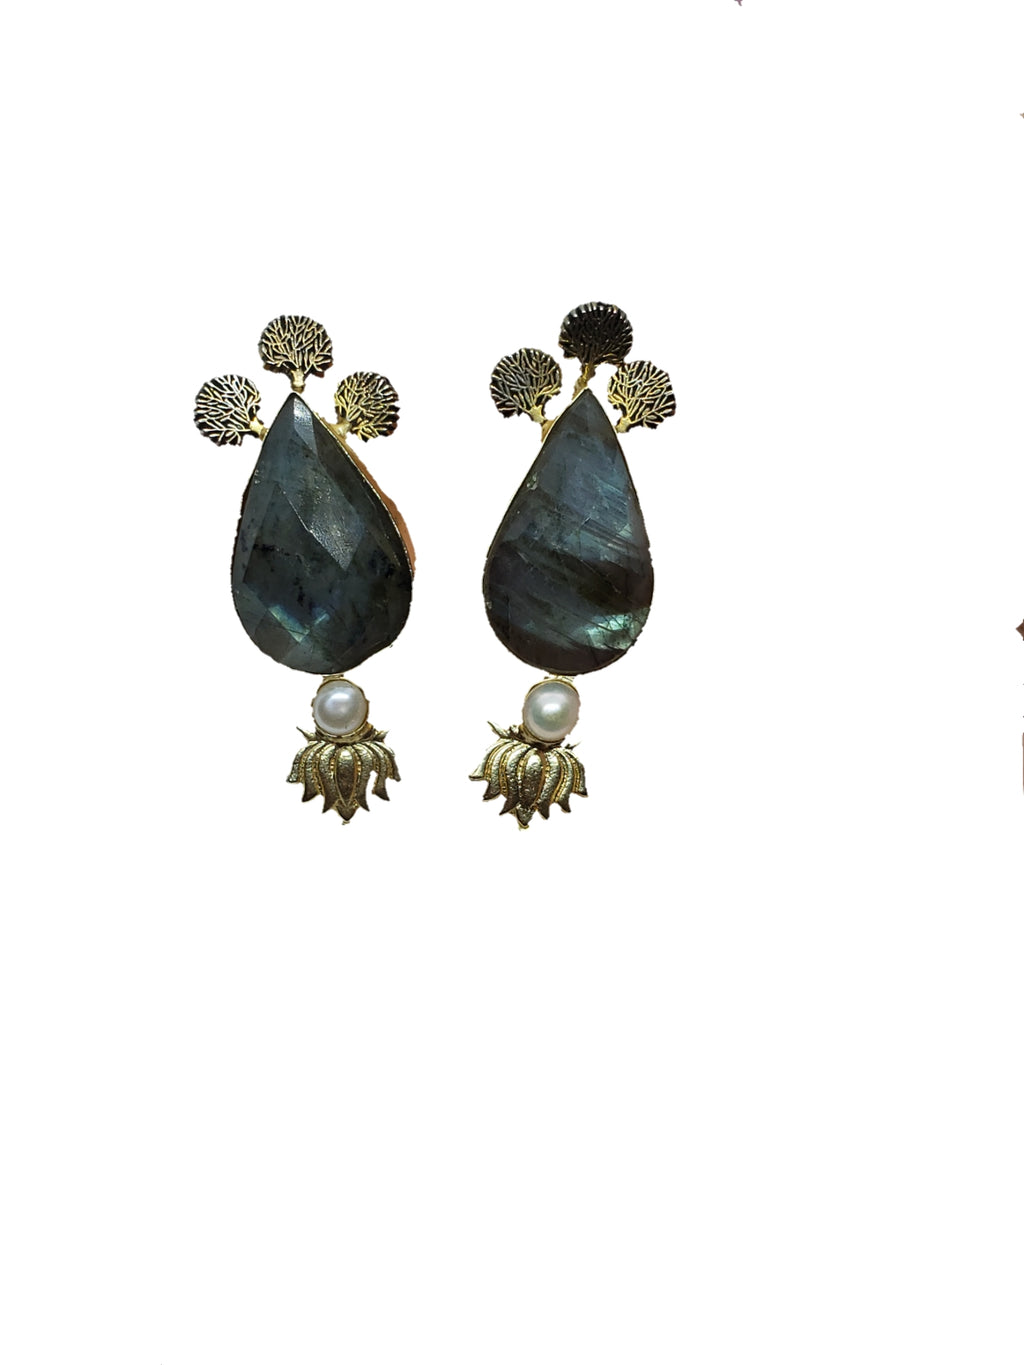 Labradorite Stone Stud Earrings - The Bauble Shop